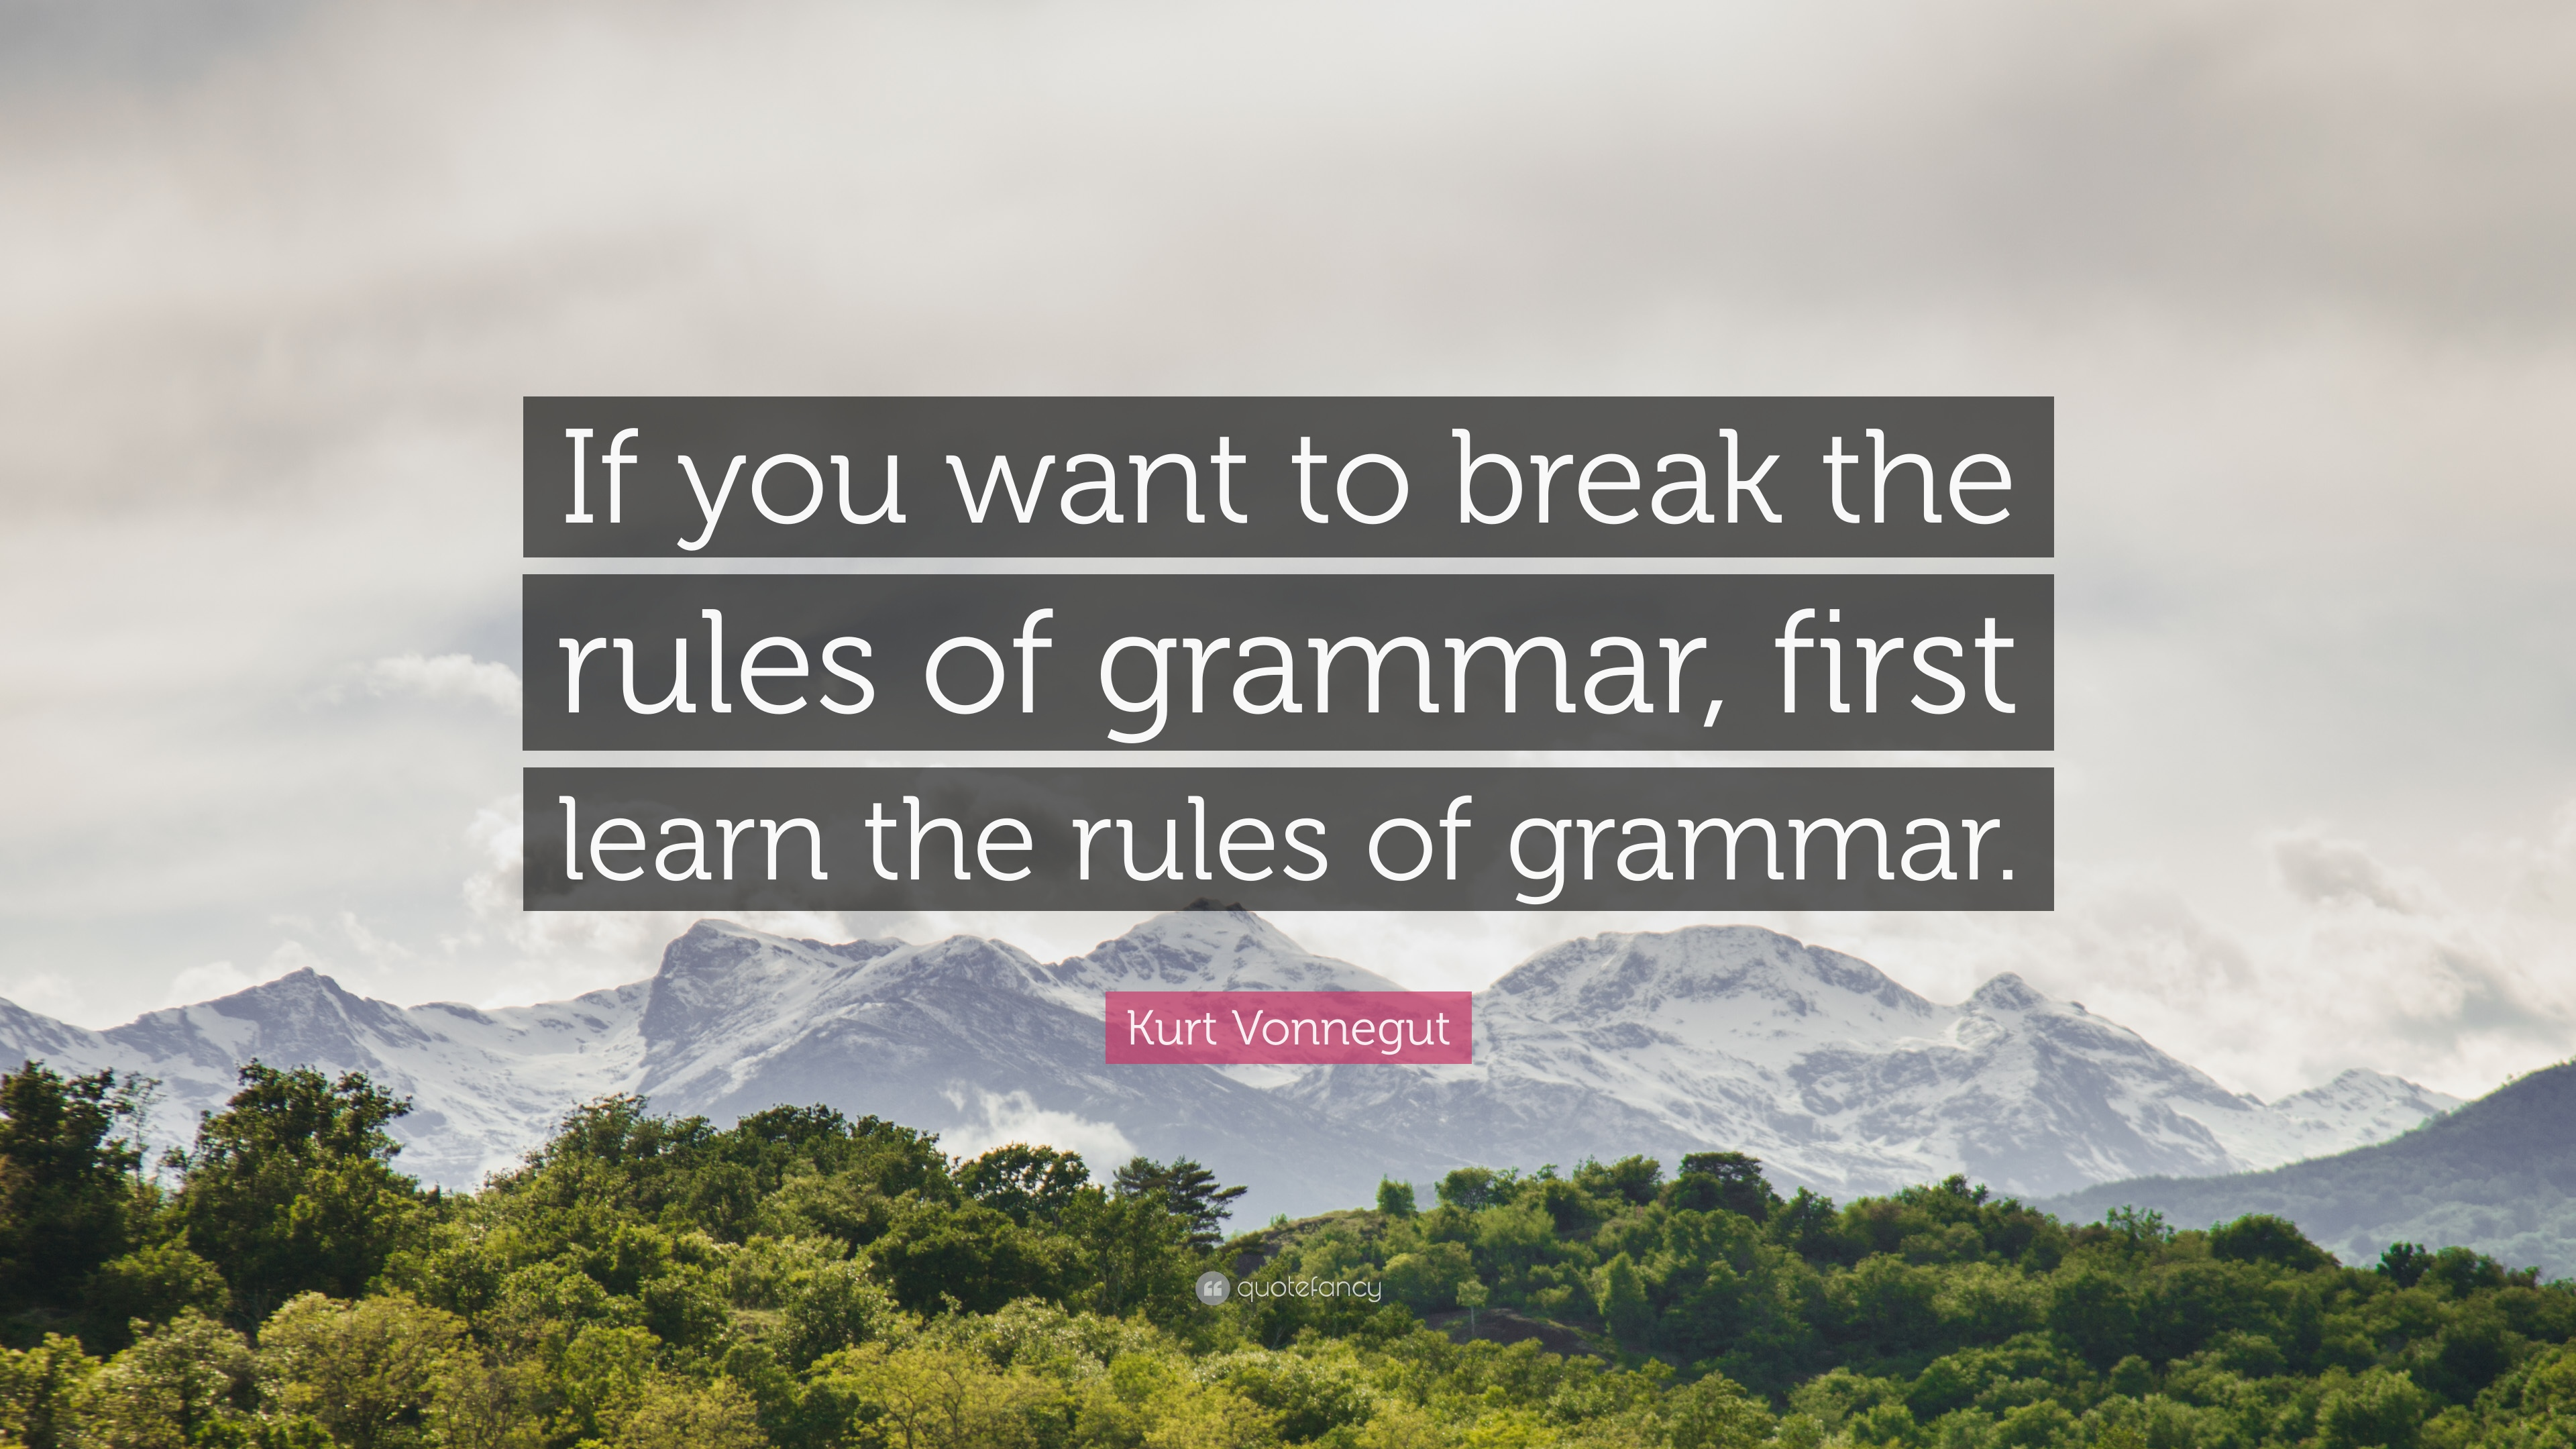 ... to break the rules of grammar, first learn the rules of grammar